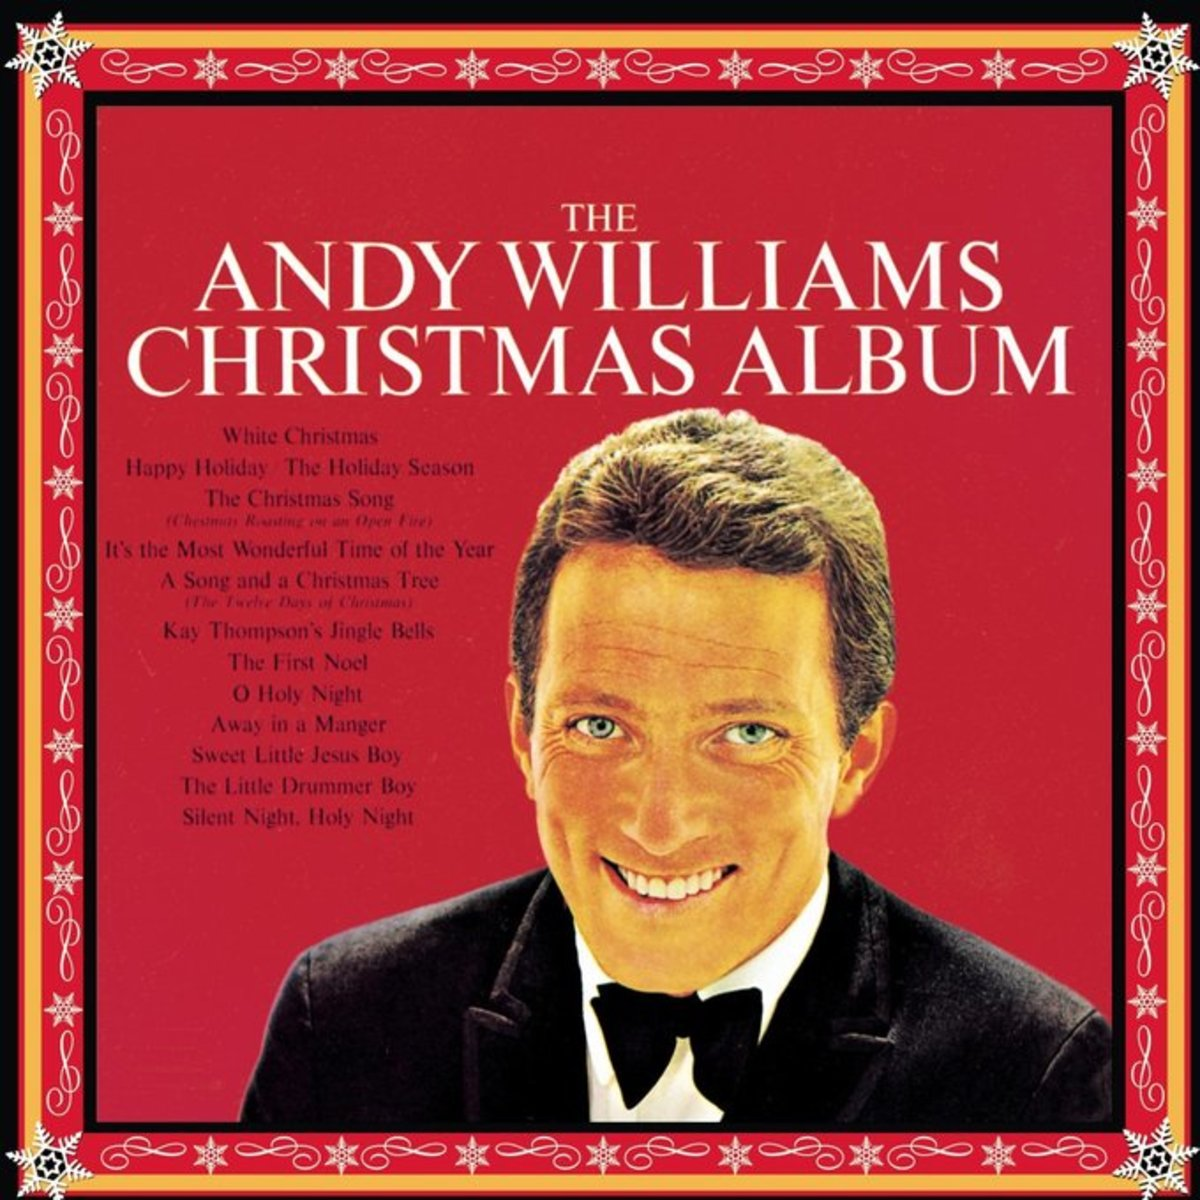 Andy Williams—The Andy Williams Christmas Album